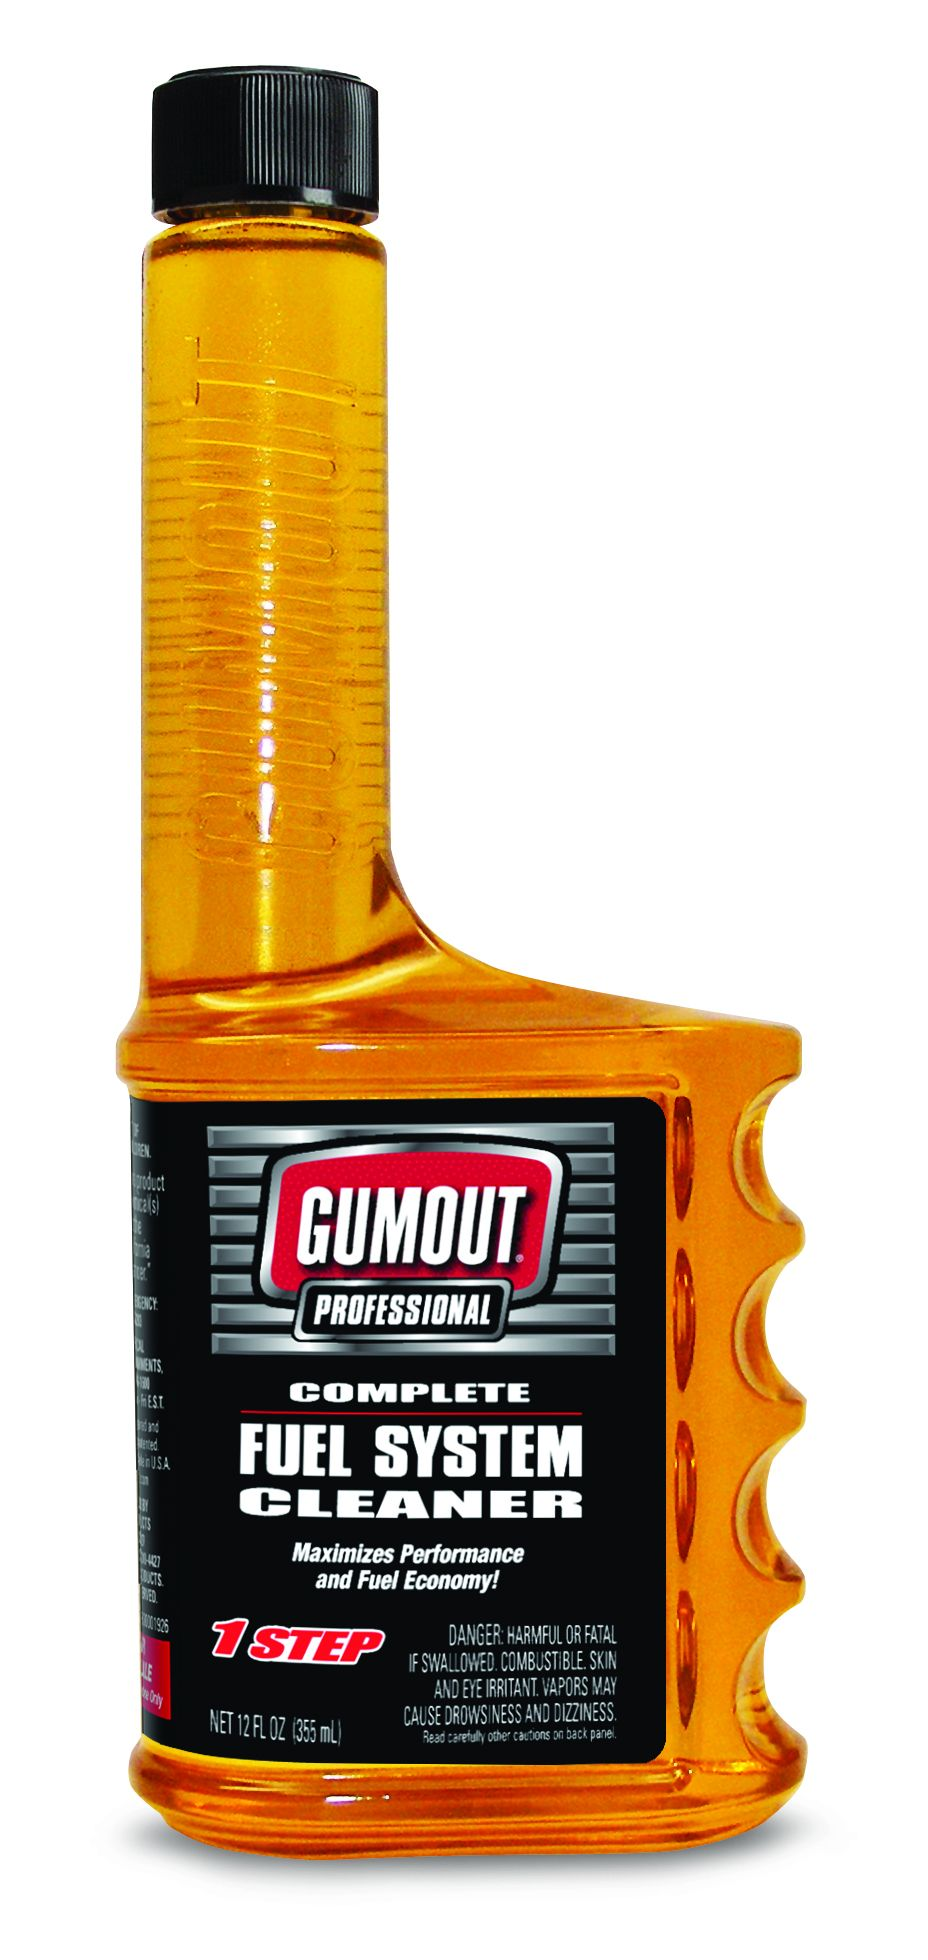 800001926 Gumout Fuel System Cleaner Use To Restore Performance And